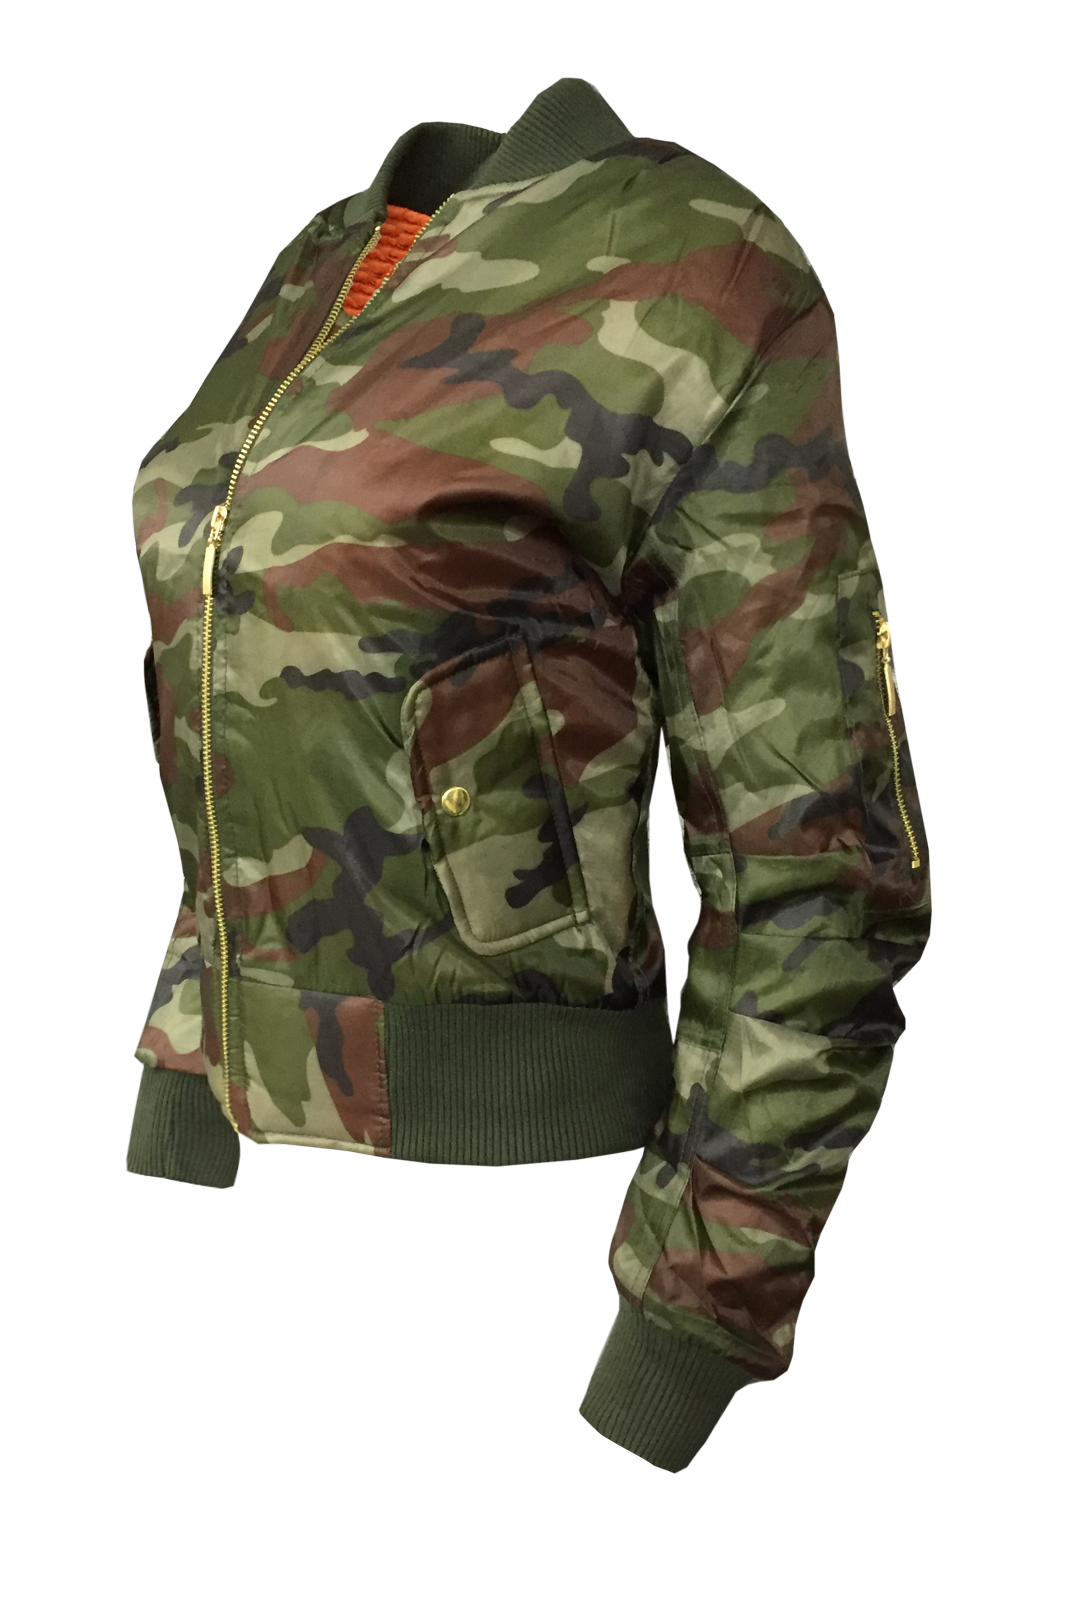 tru blu femme ma1 veste camouflage femmes militaire arm e bomber biker fly manteau ebay. Black Bedroom Furniture Sets. Home Design Ideas